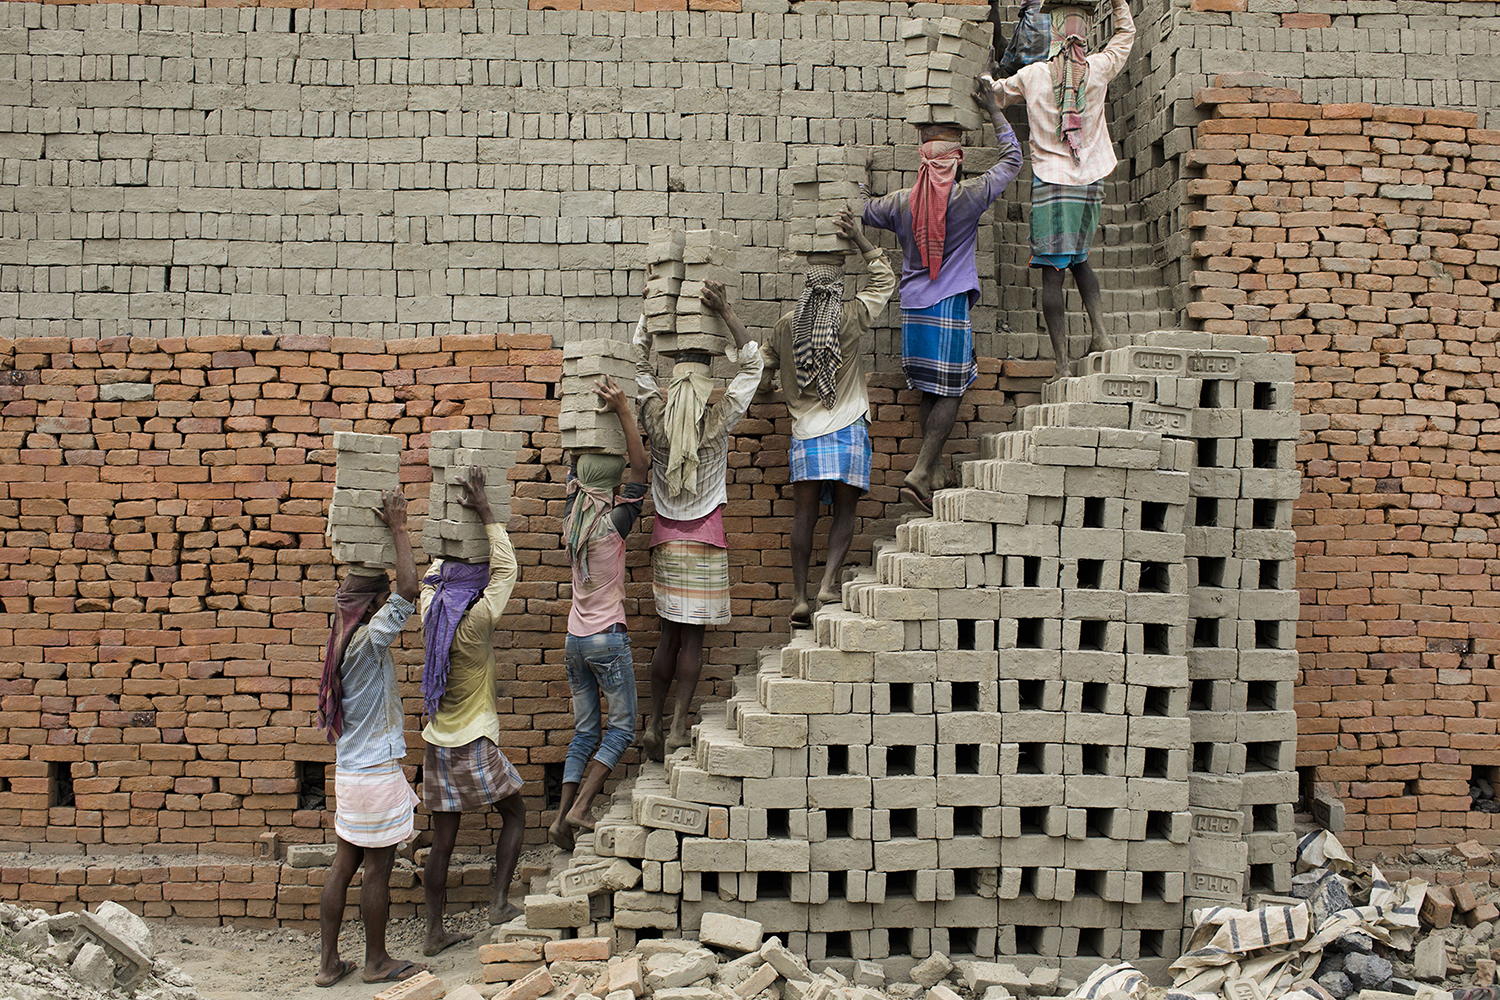 Indian laborers carry clay bricks to a kiln in Farakka, in the Indian state of West Bengal, on April 3. XAVIER GALIANA/AFP/Getty Images